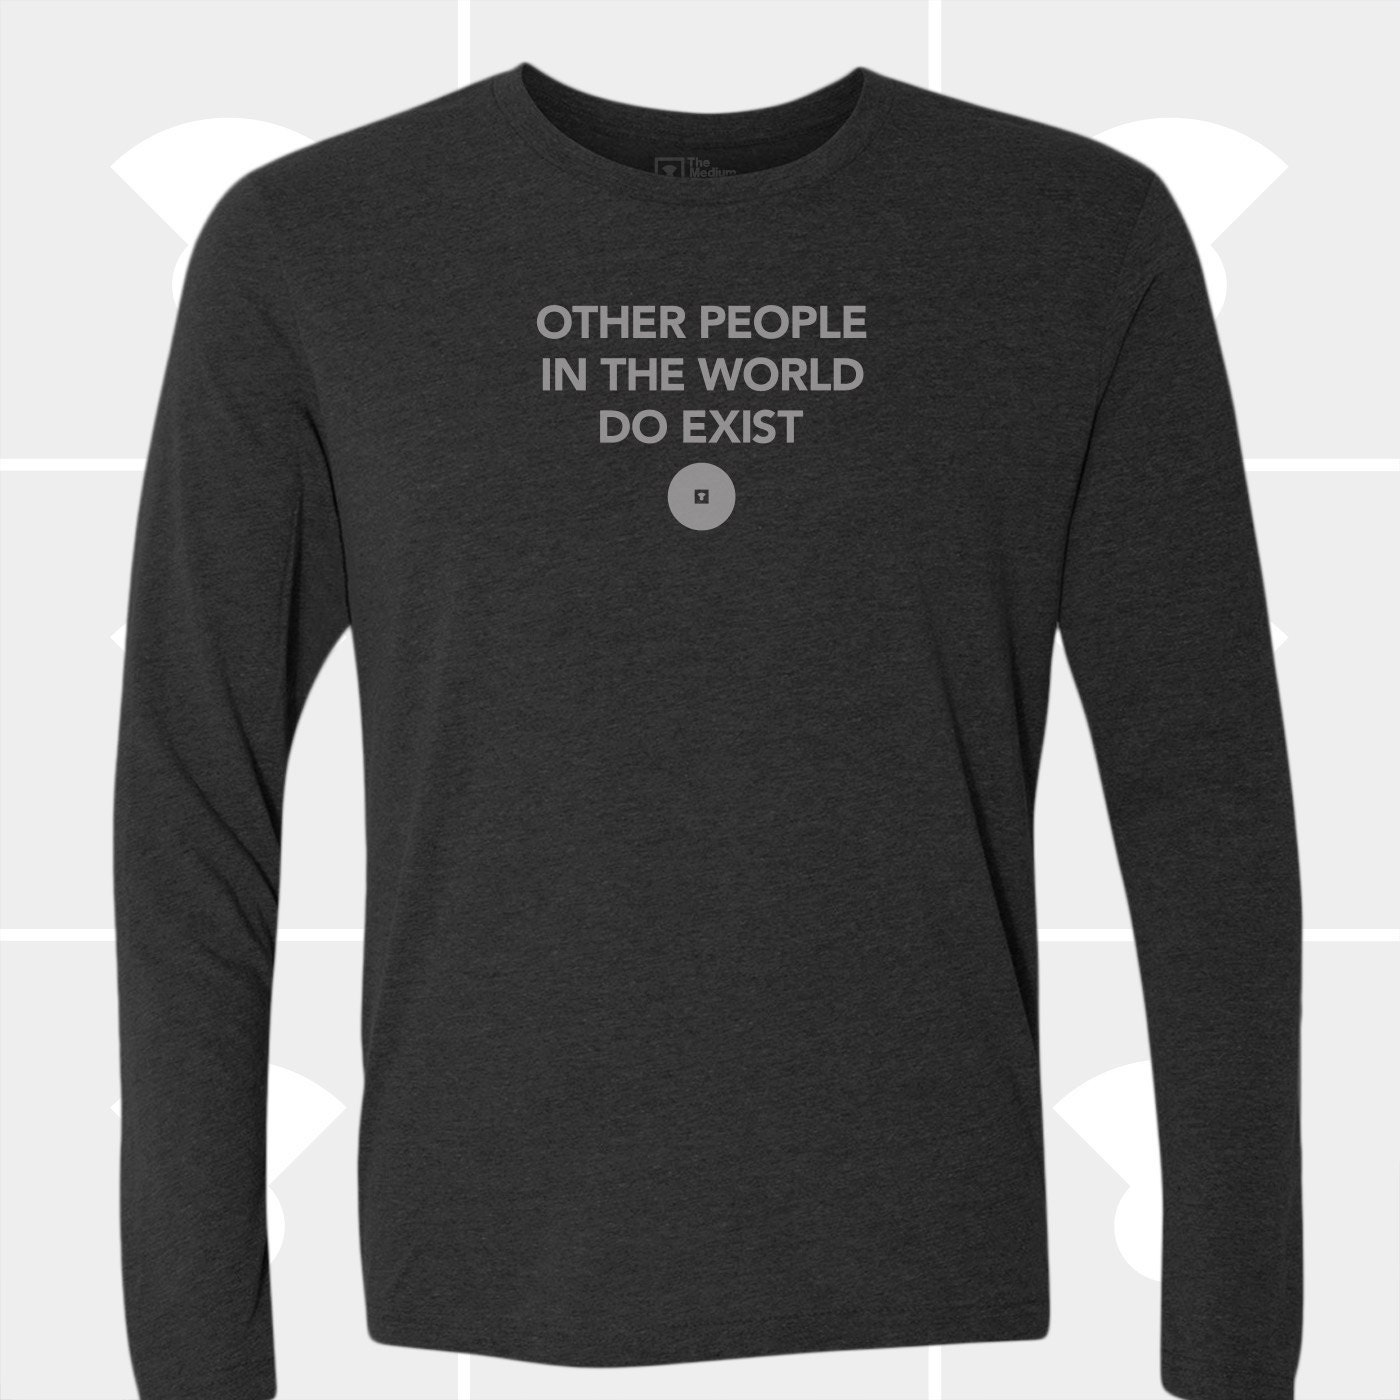 OTHER PEOPLE LONG SLEEVE TSHIRT